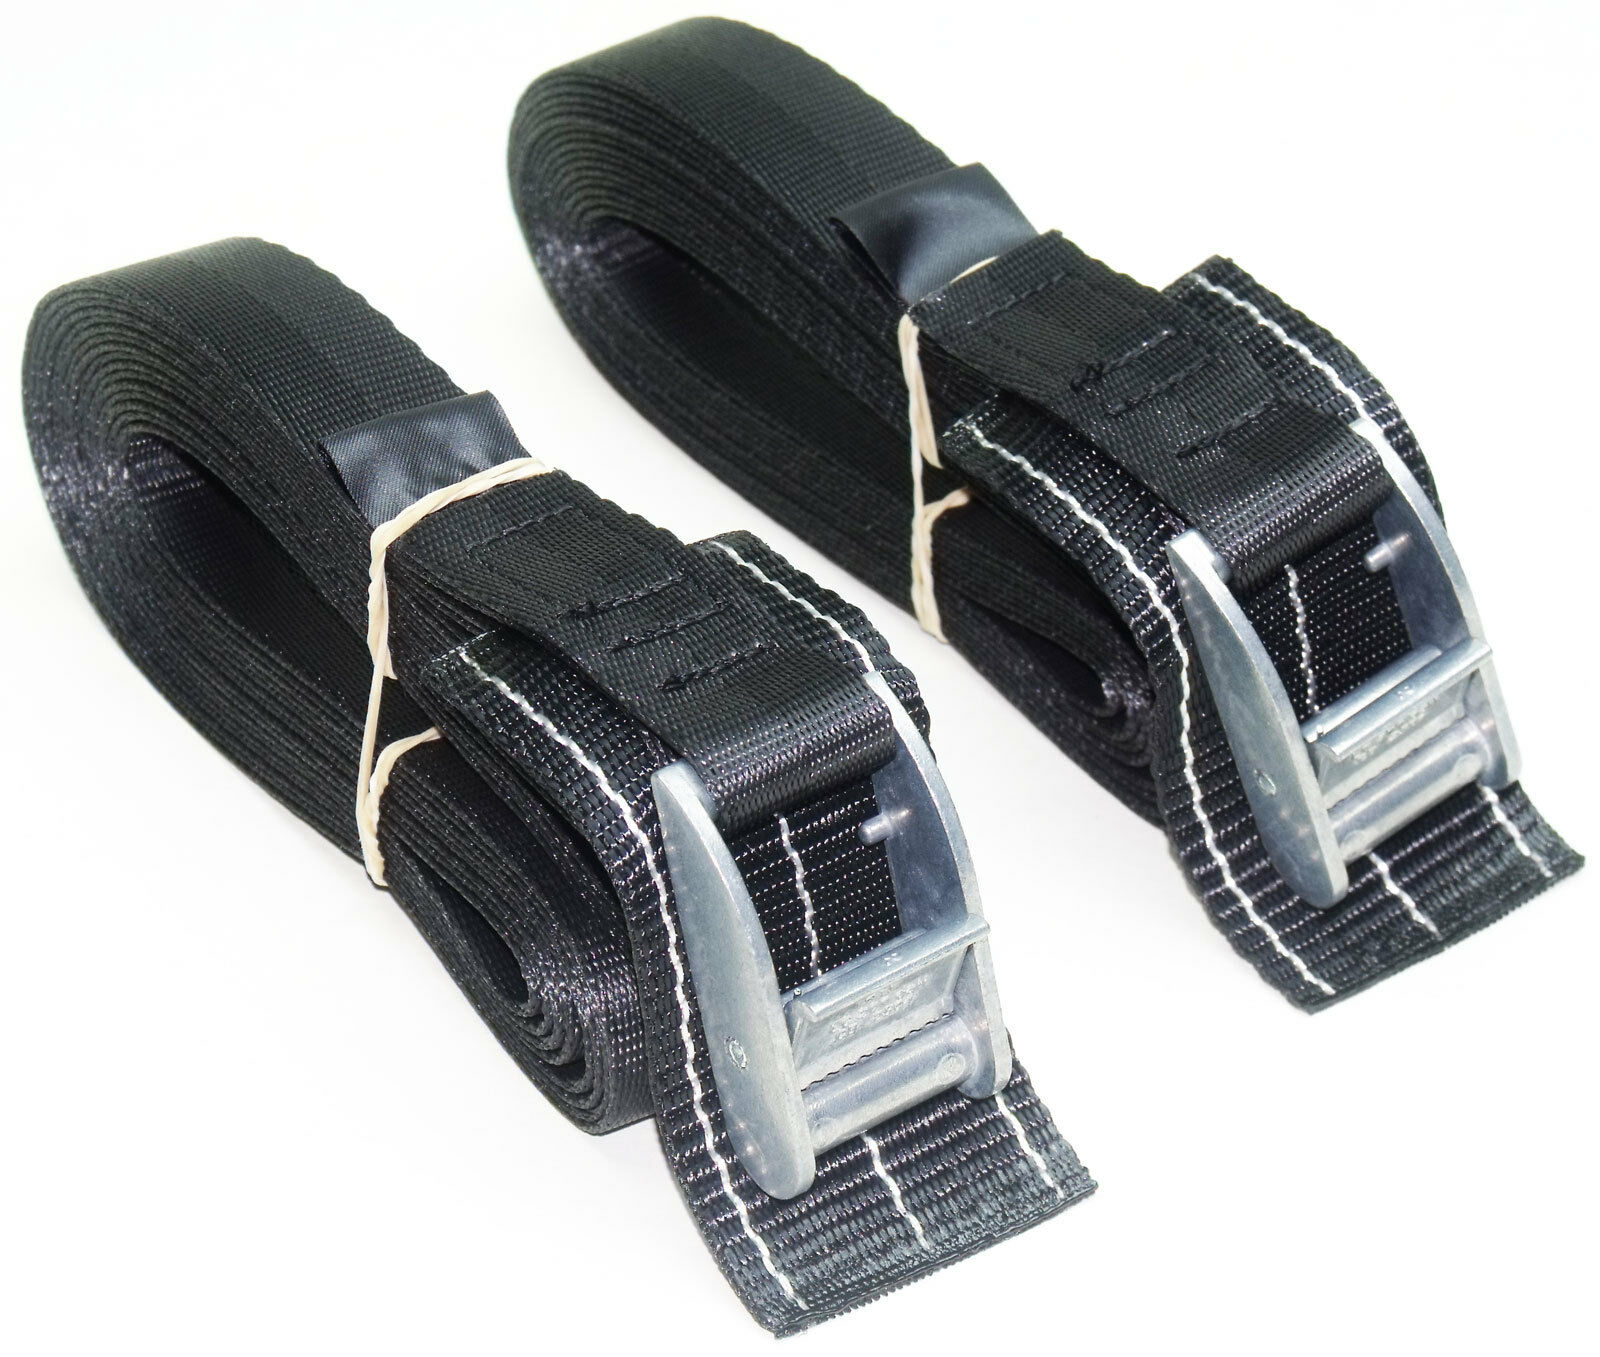 Lashing Strap Cargo Trailer 4-pack of 5.0m TOUGH PADDED Cam Buckle Straps Blue